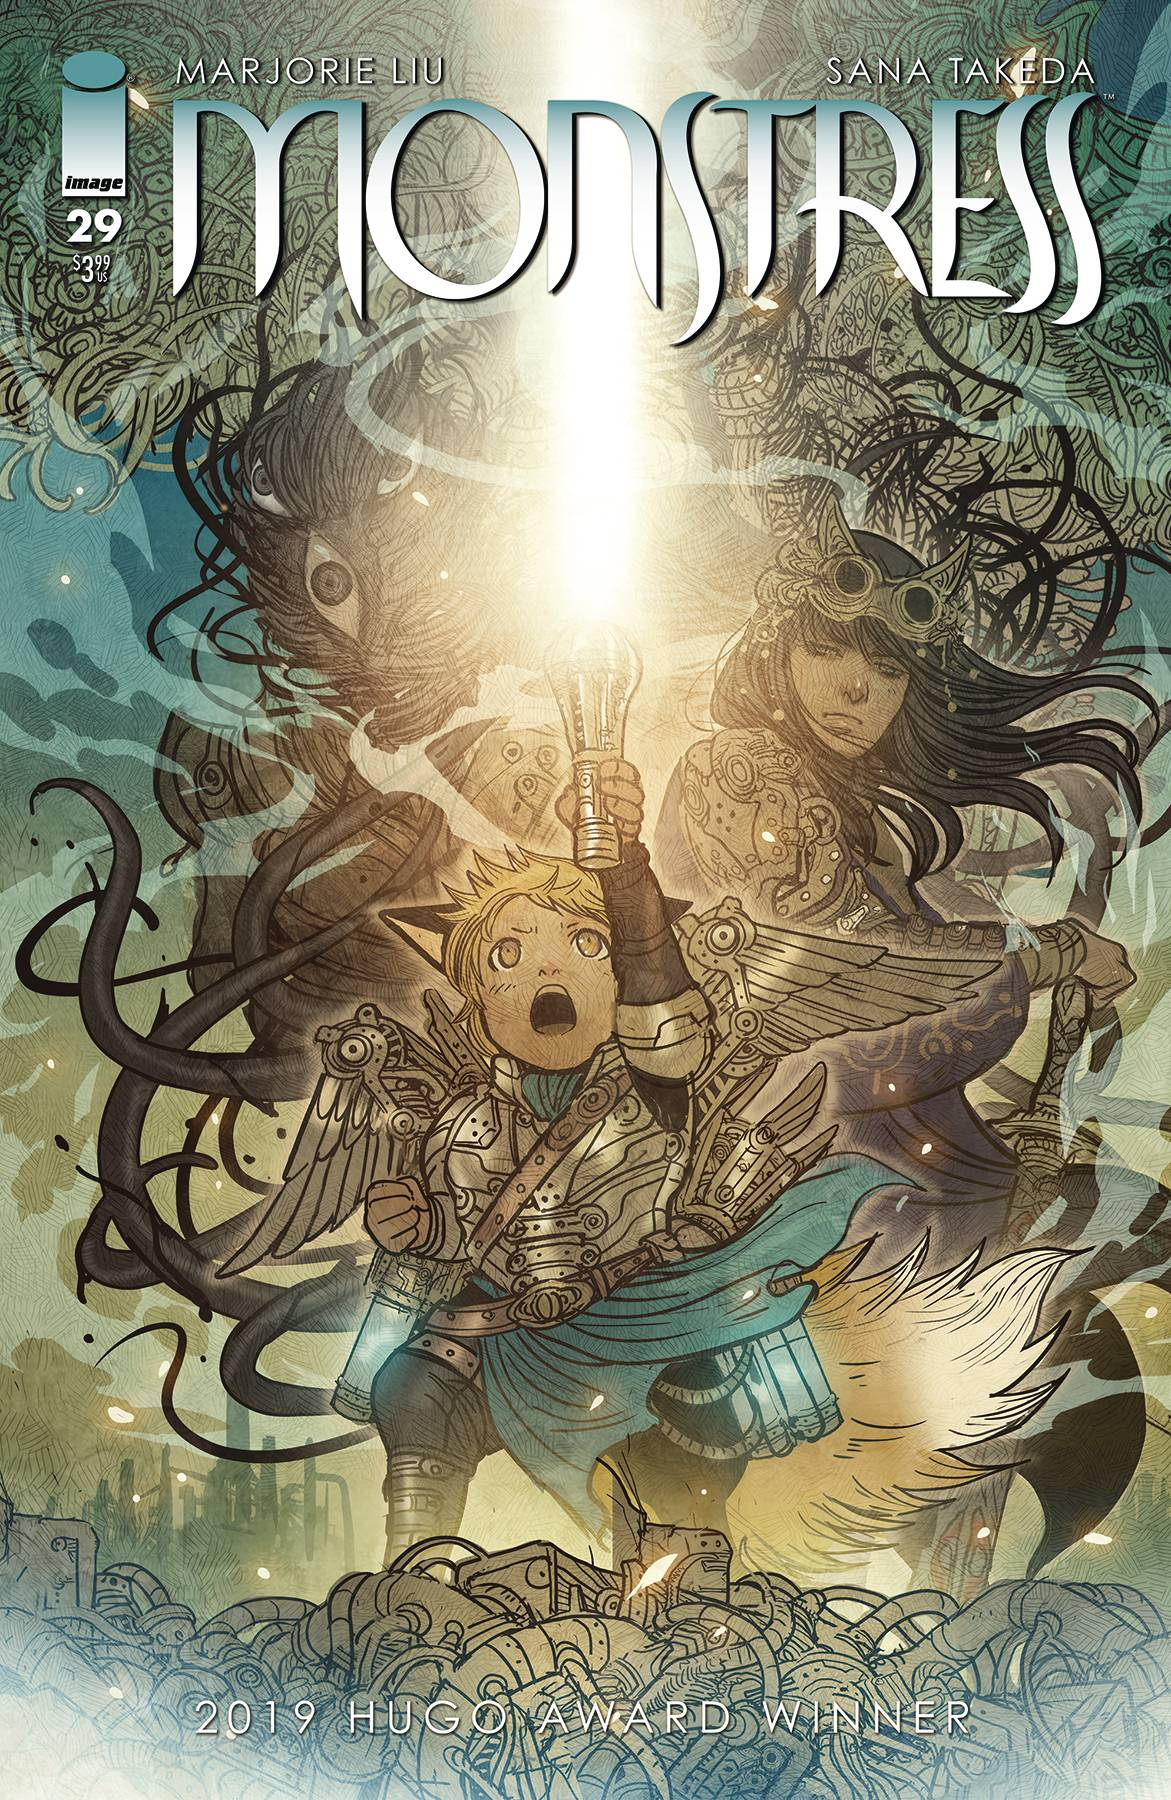 MONSTRESS #29 (MR)